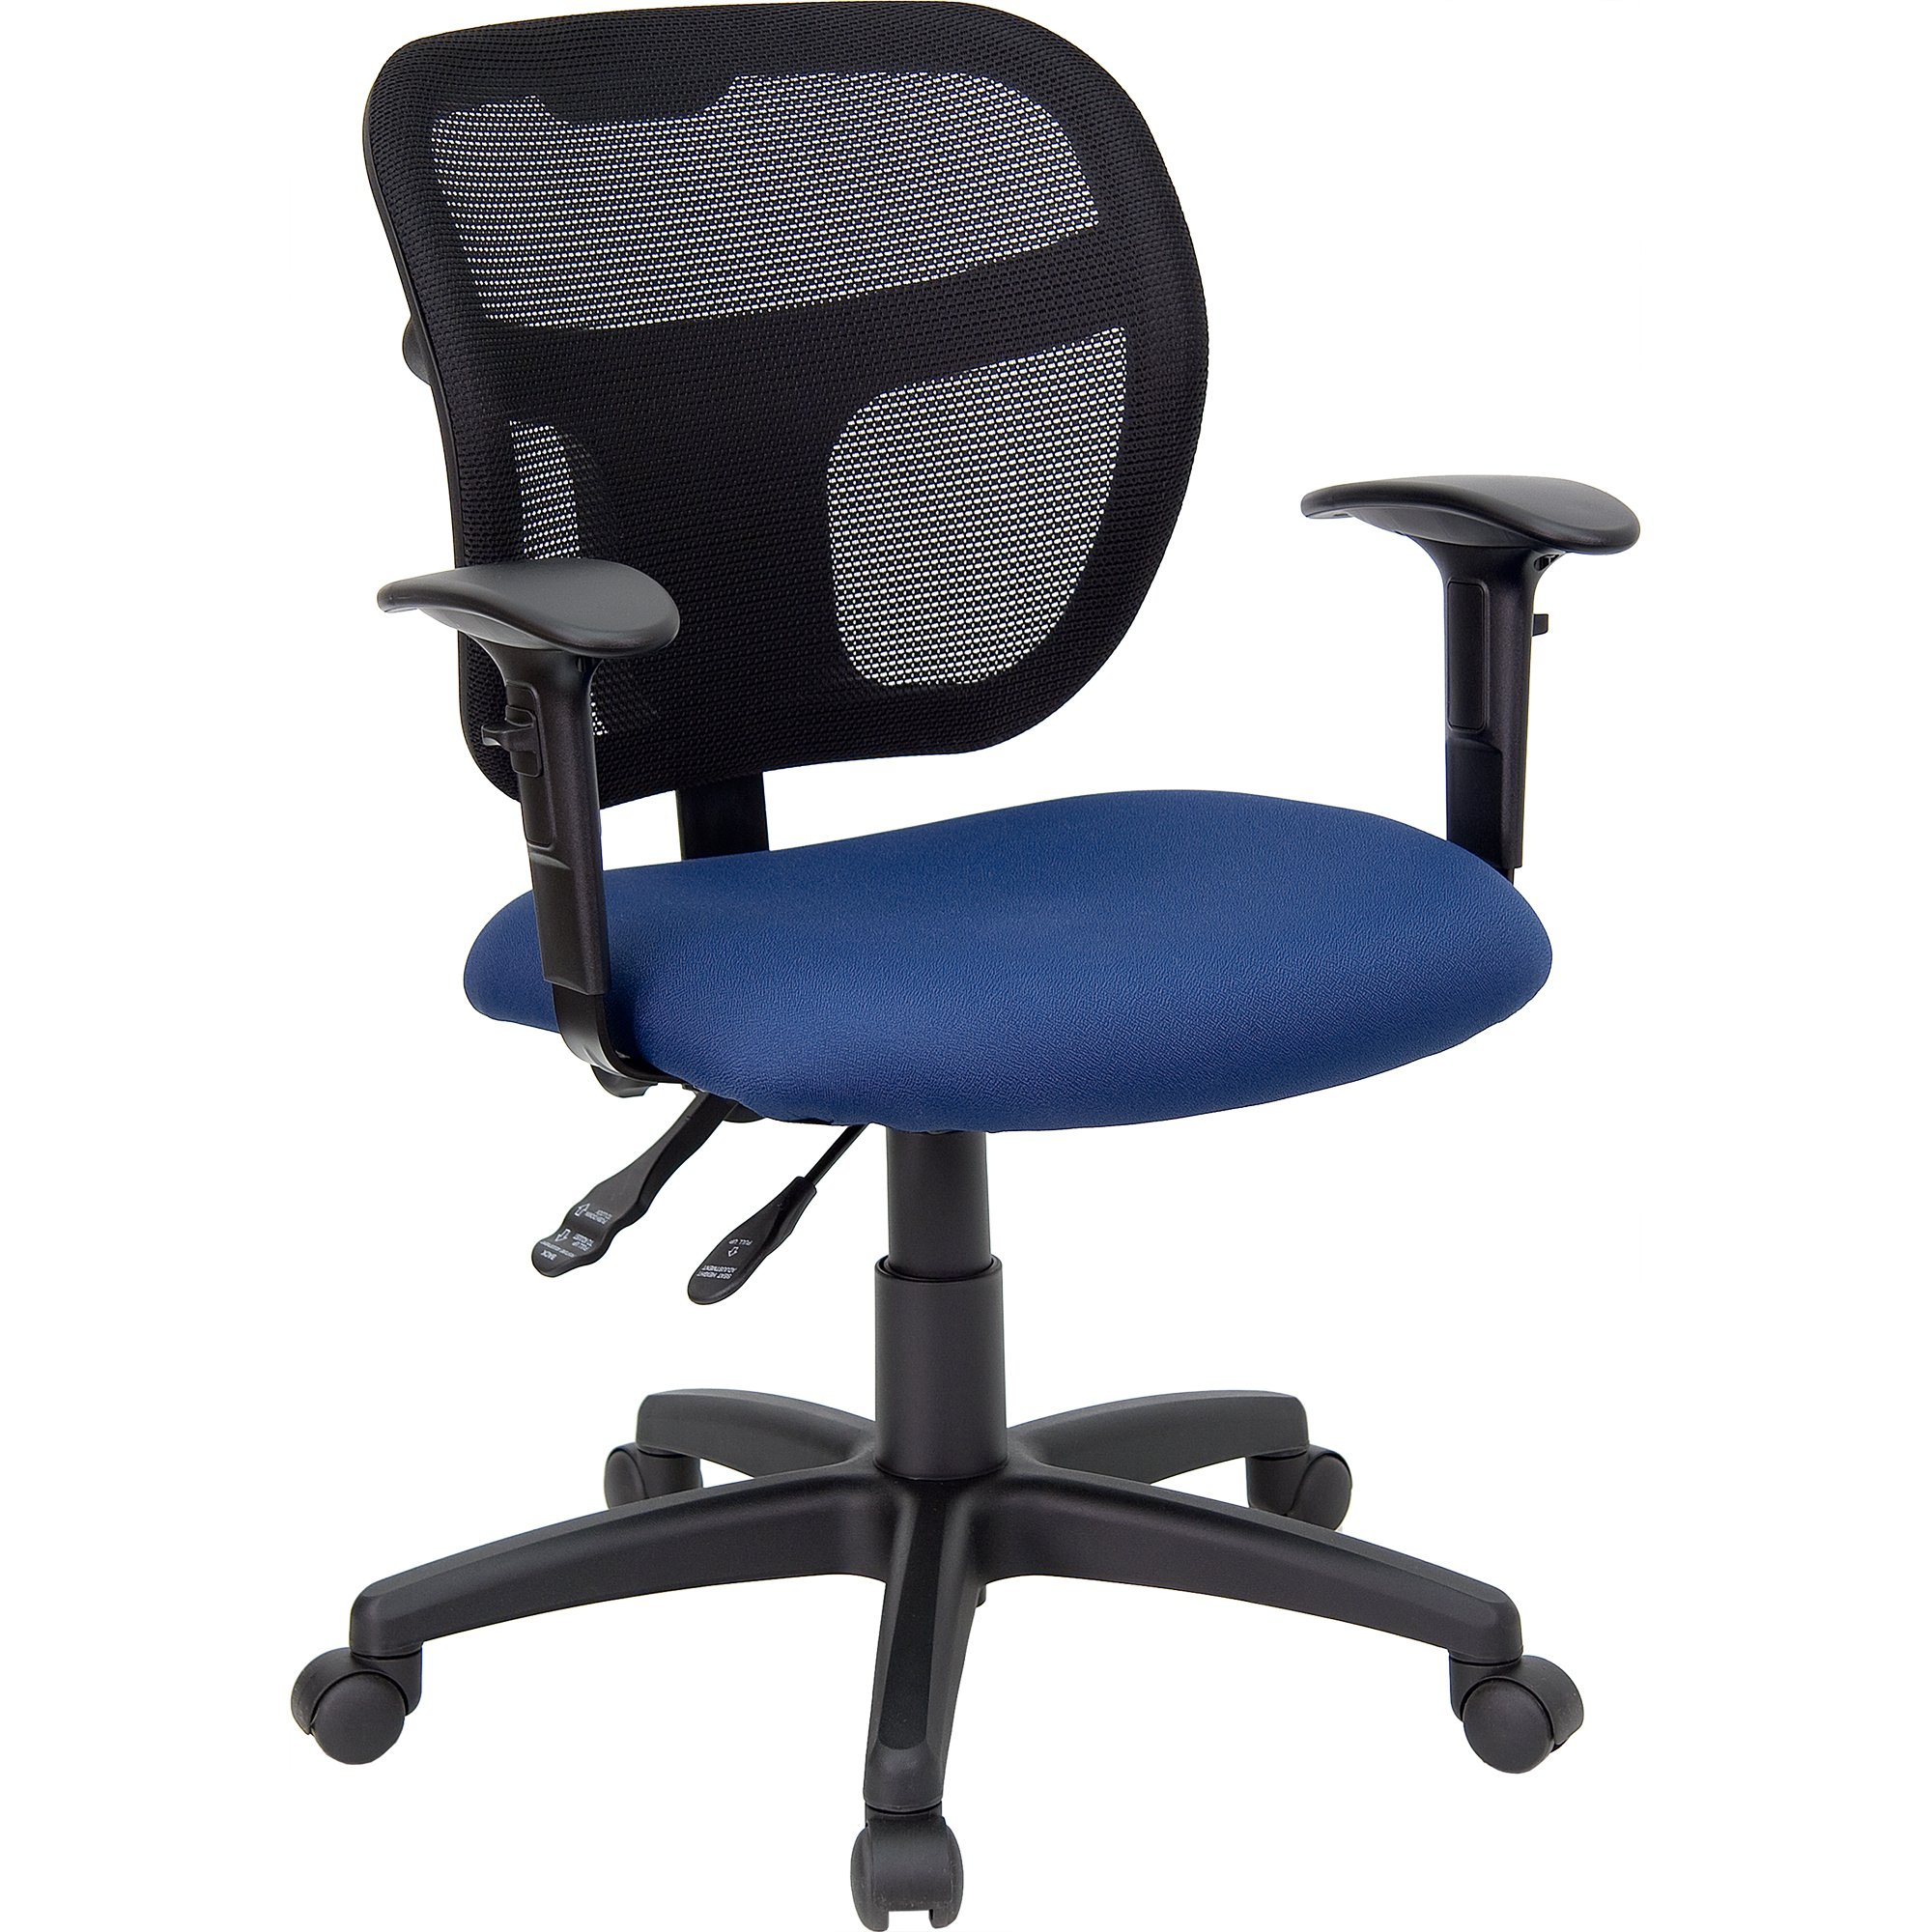 Shop Theo Mesh Dual Paddle Control Adjustable Swivel Ergonomic Regarding Theo Ii Swivel Chairs (View 15 of 25)